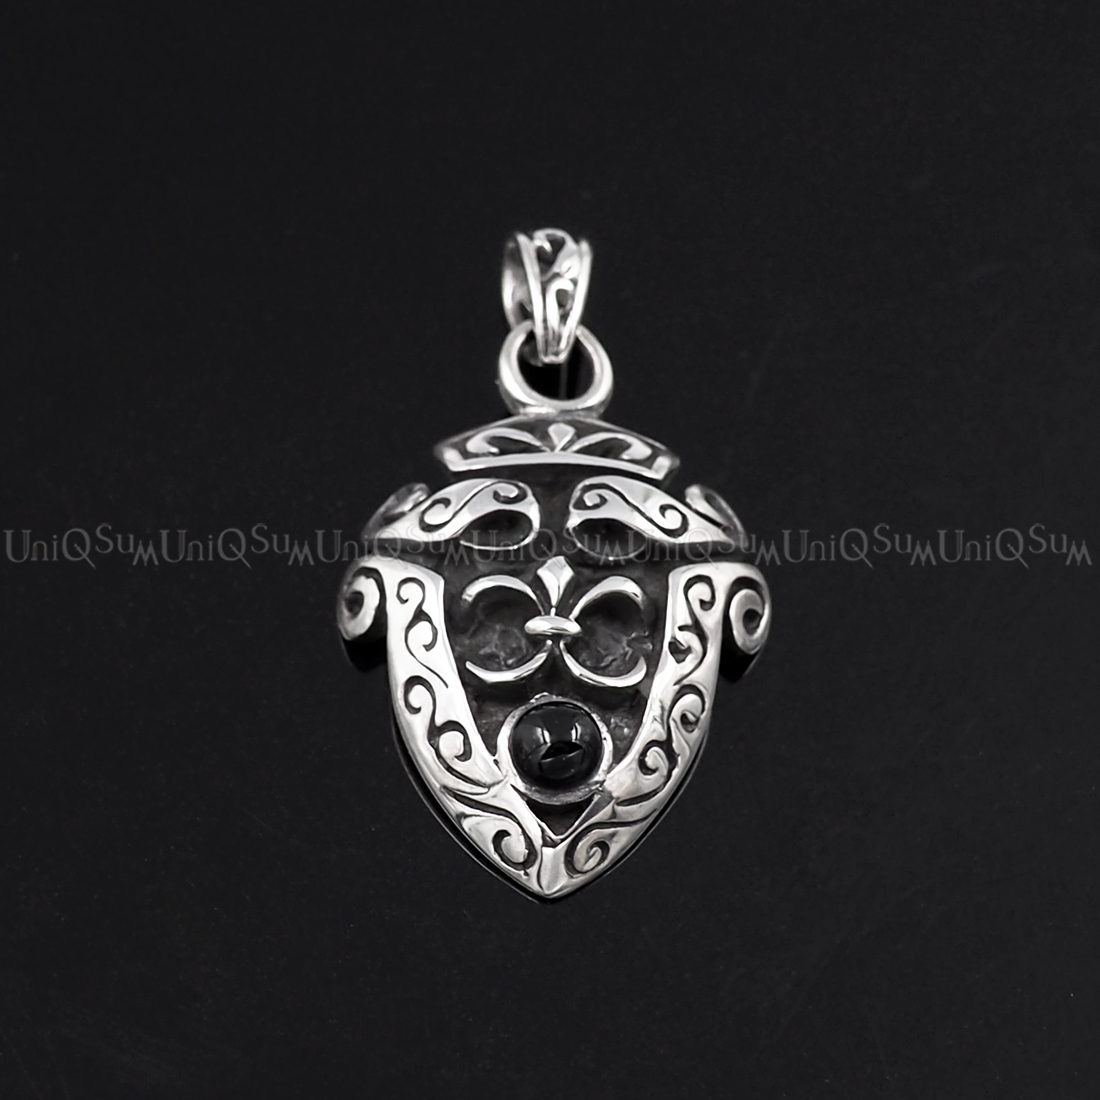 Fleur de lis celtic shield 925 sterling silver pendant uniqsum fleur de lis pendants fleur de lis shield pendant celtic charm 925 sterling silver pendants mozeypictures Image collections